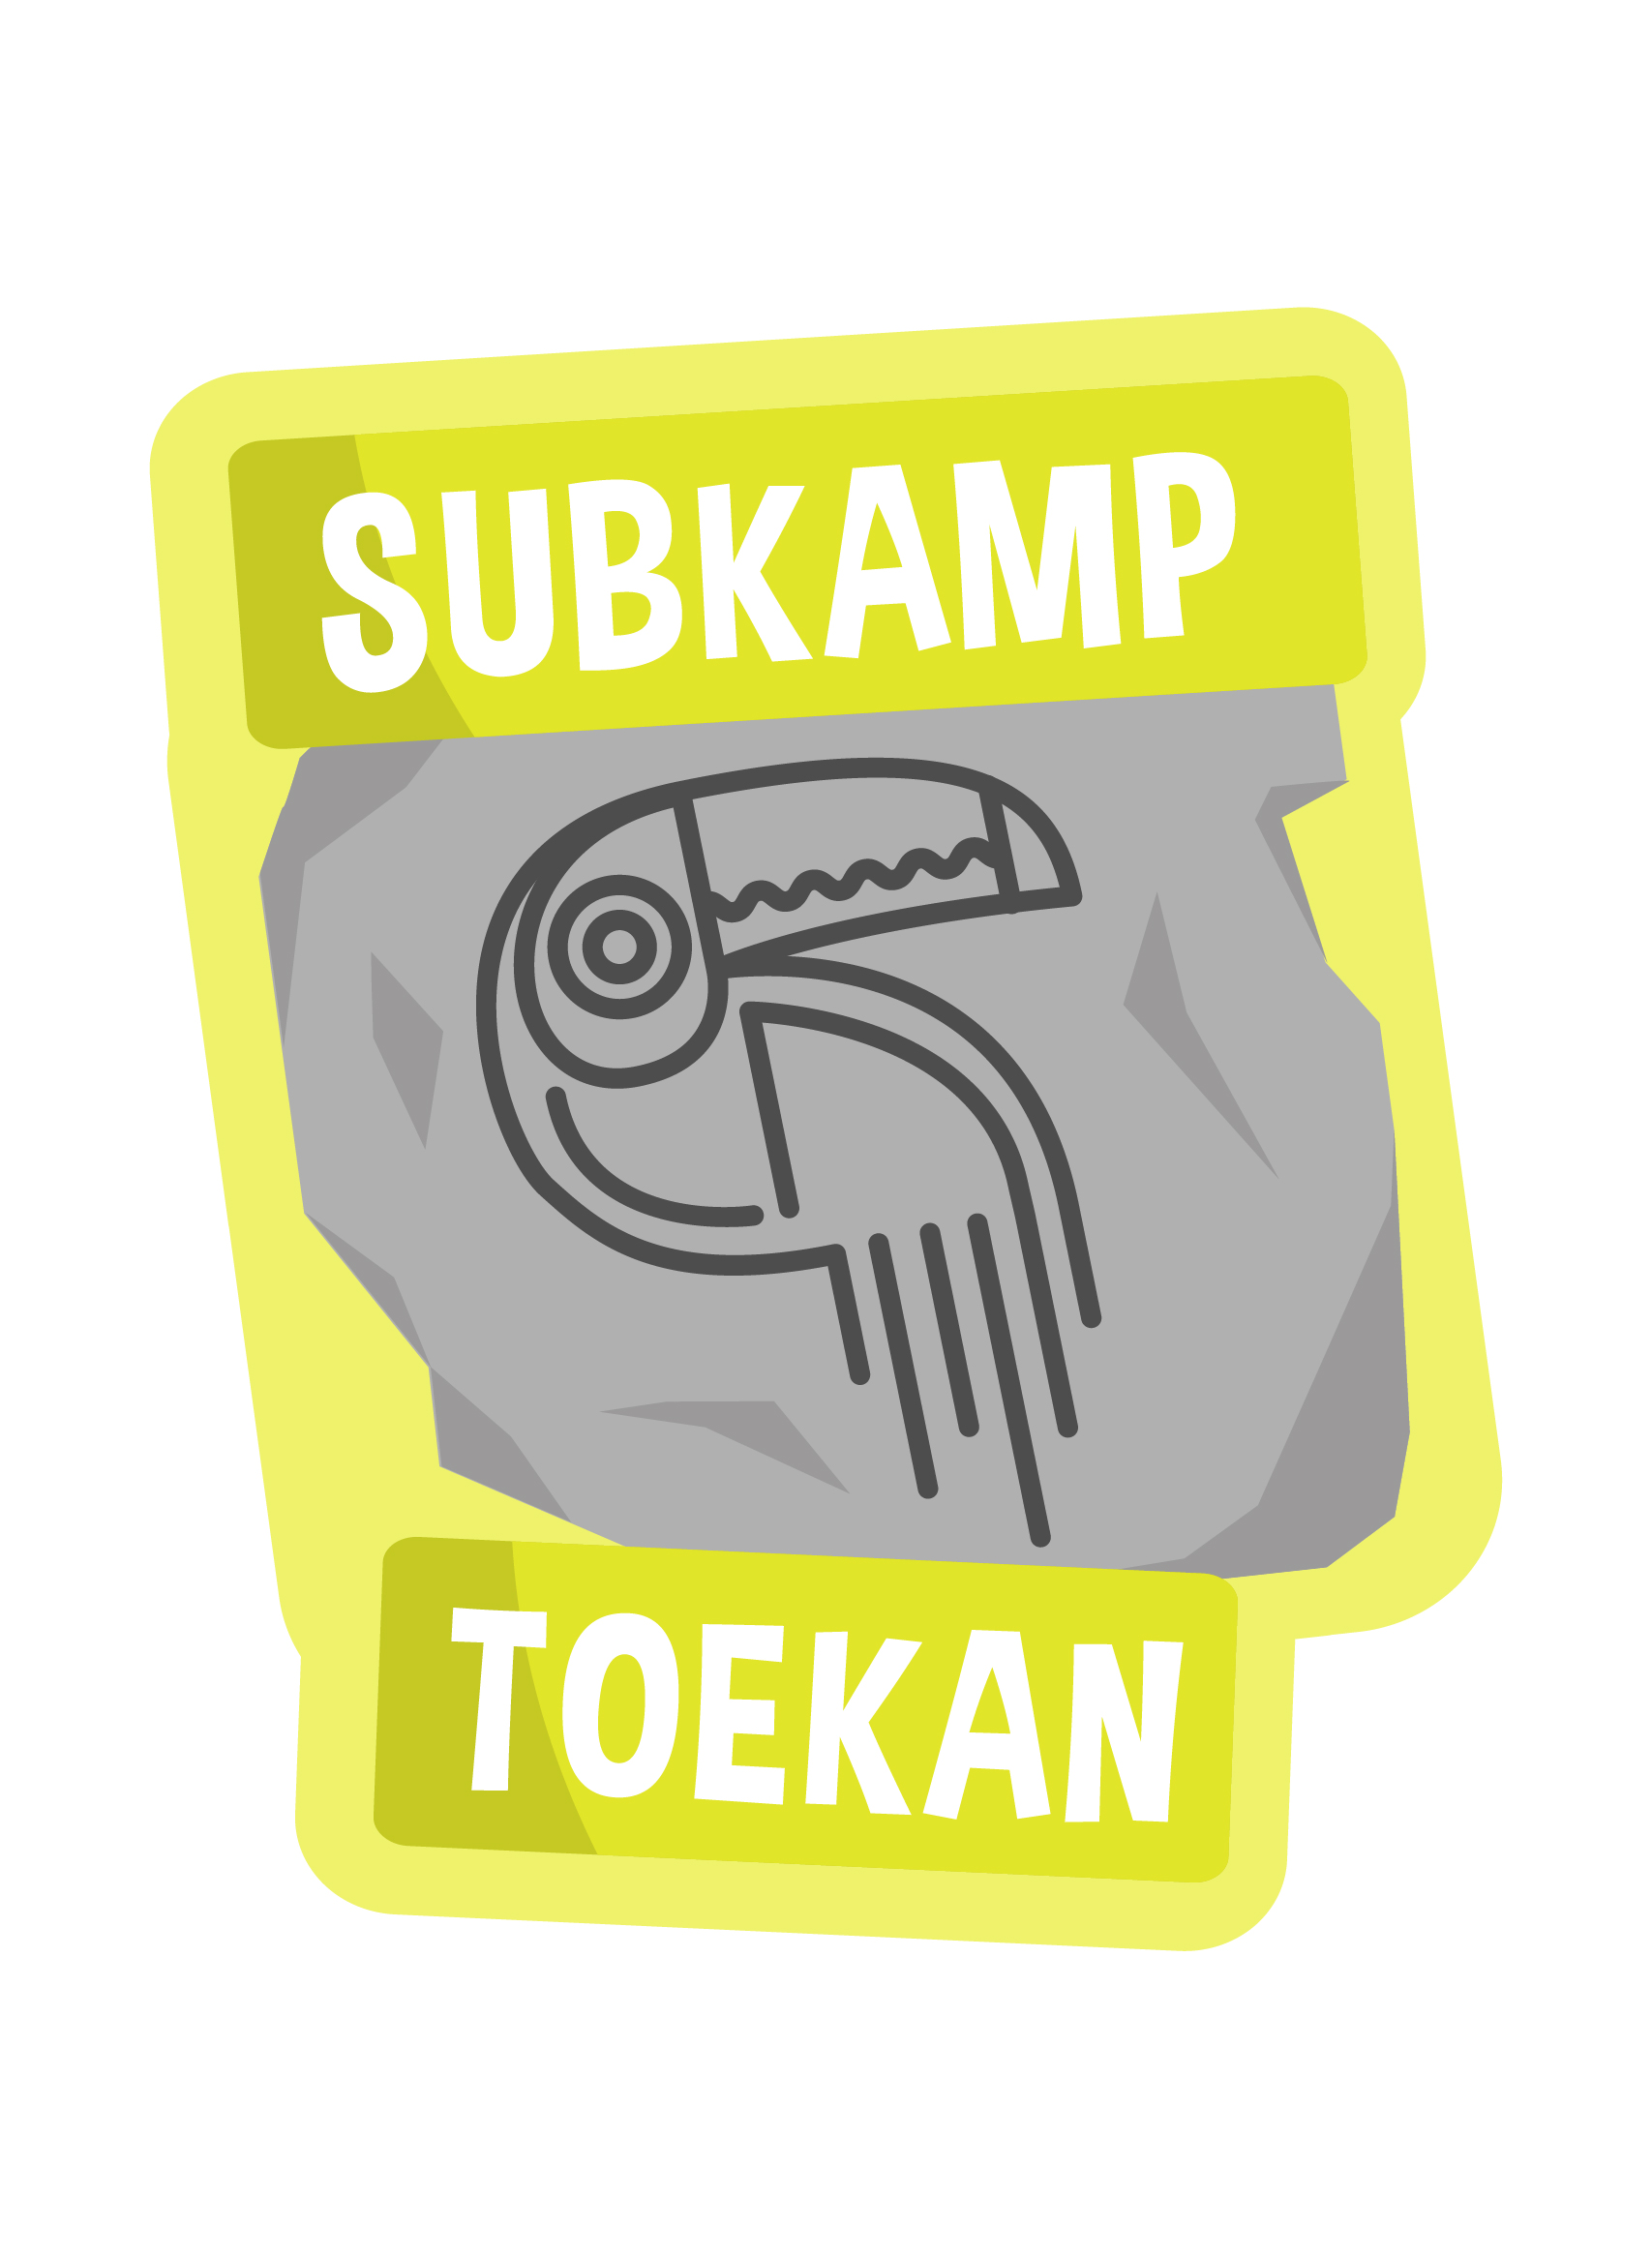 subkamp toekan color 1